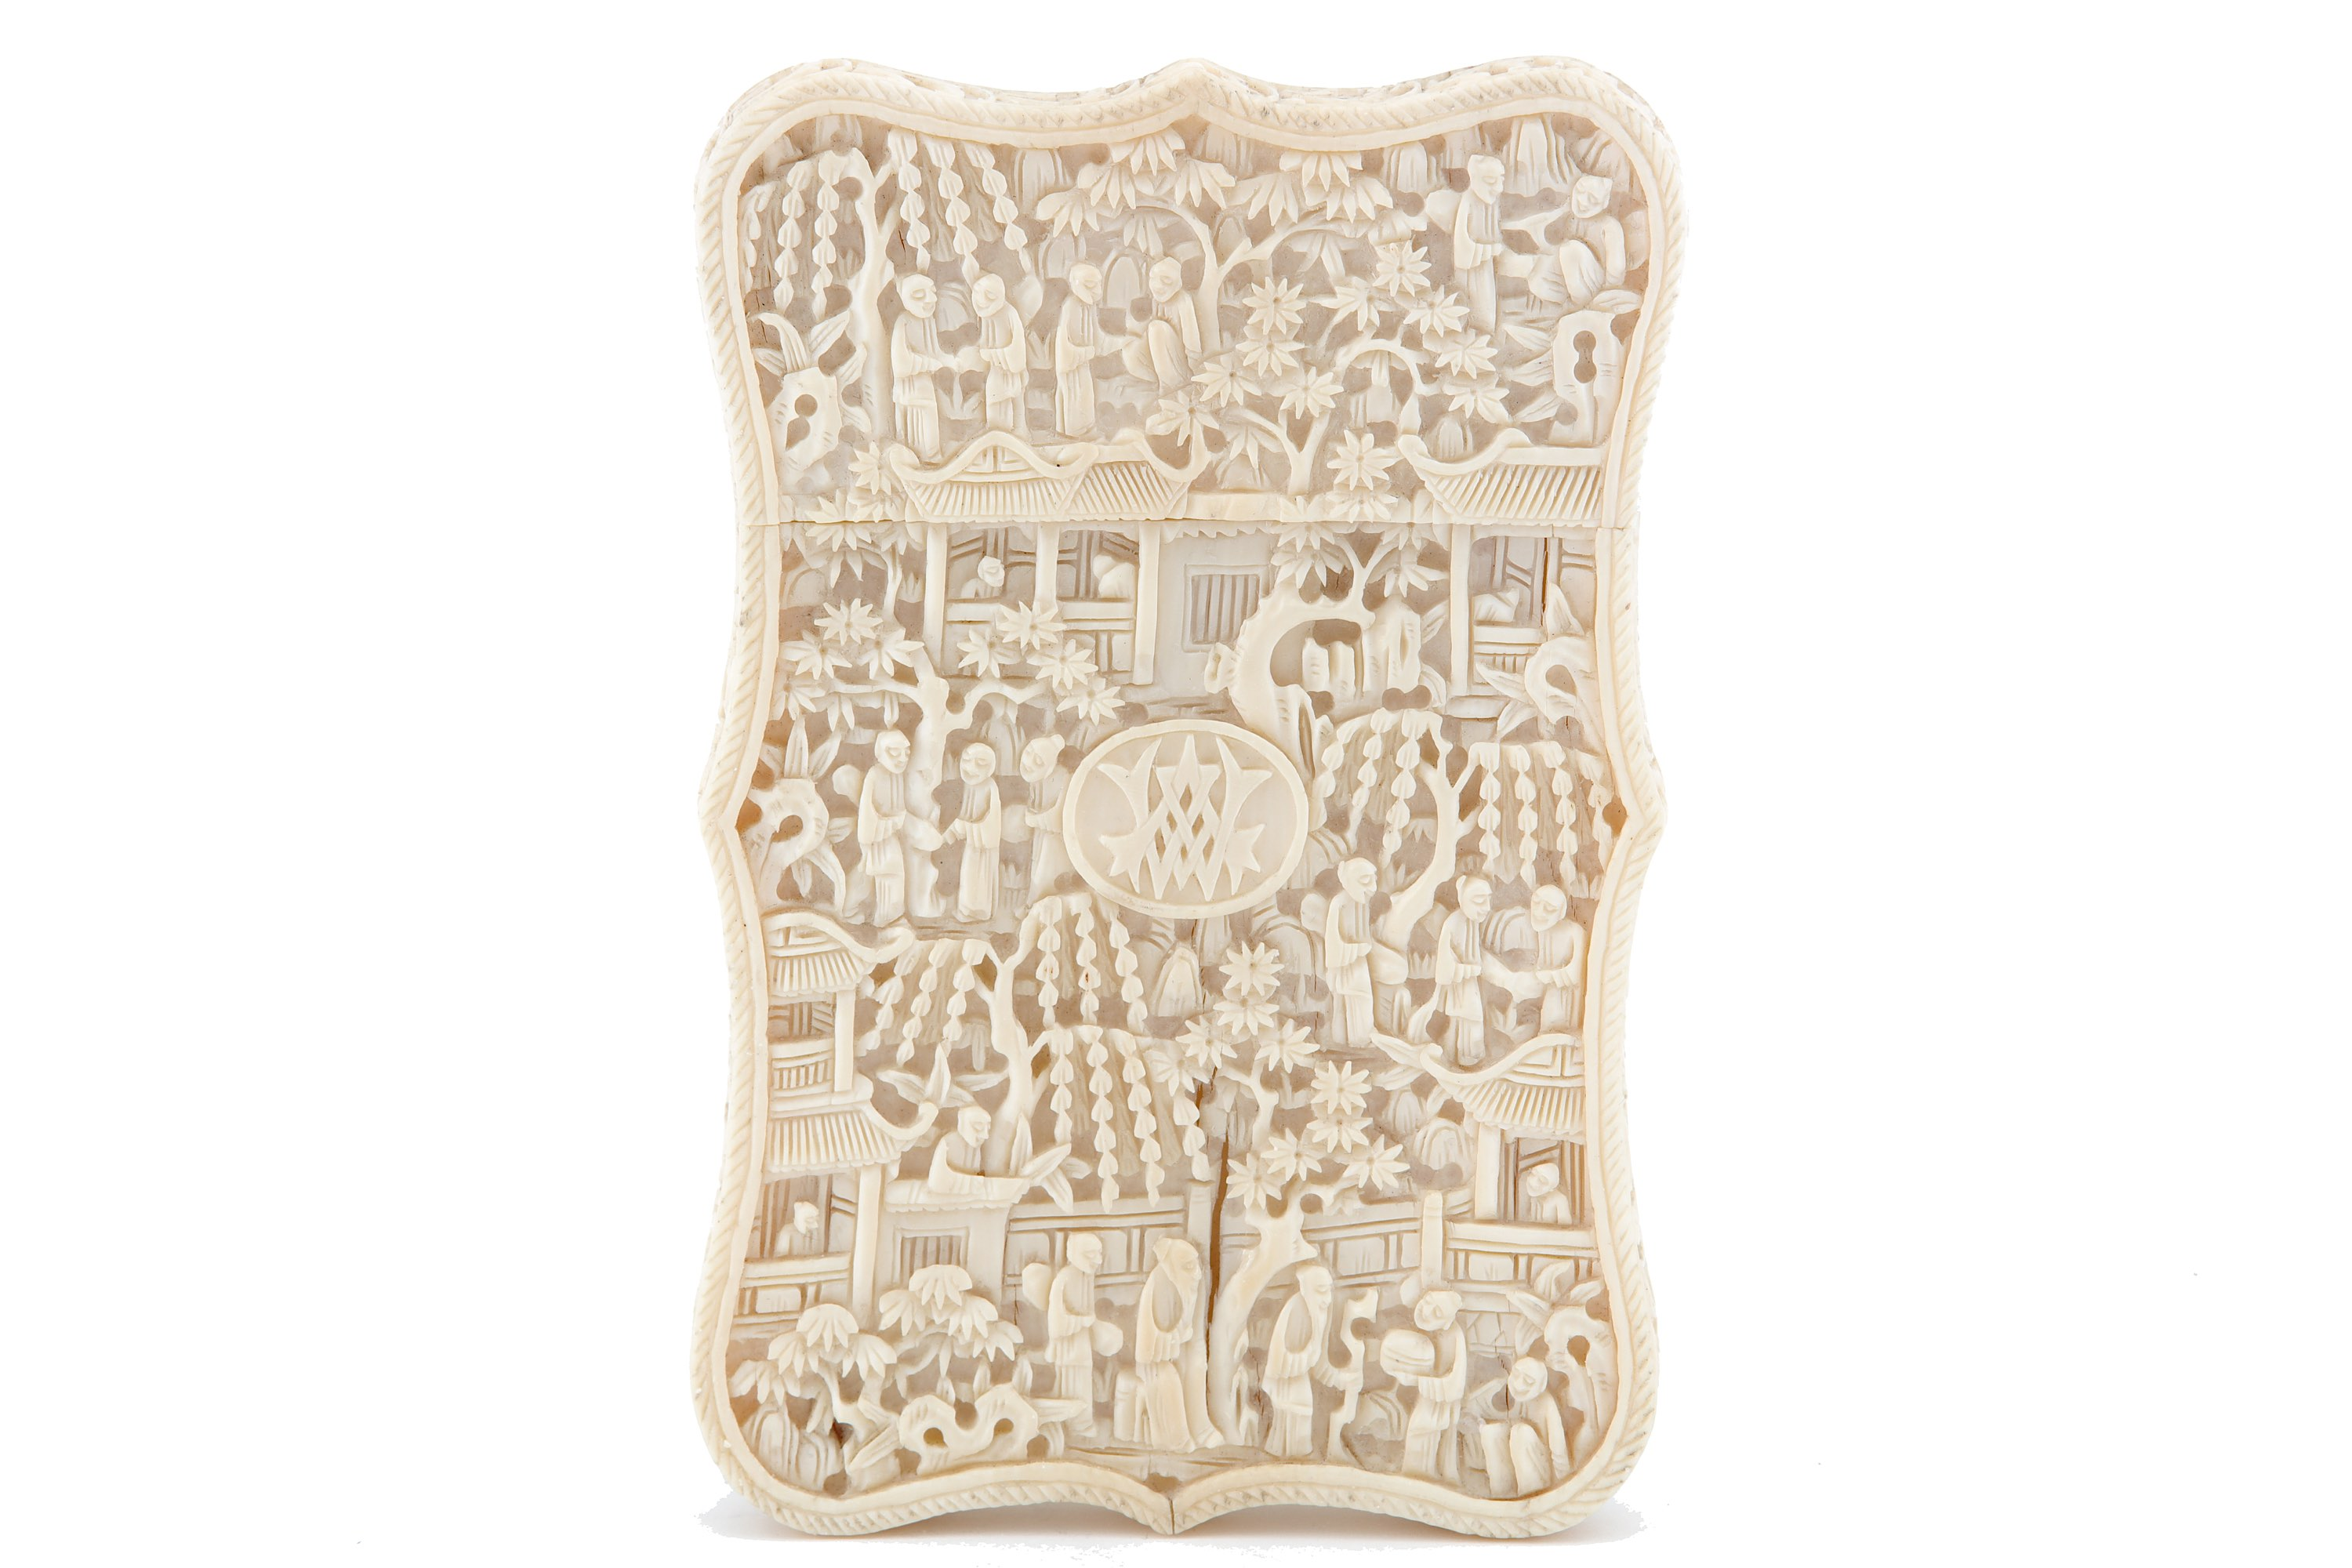 Lot 41A - A 19th century Chinese ivory card case, probably Canton circa 1880